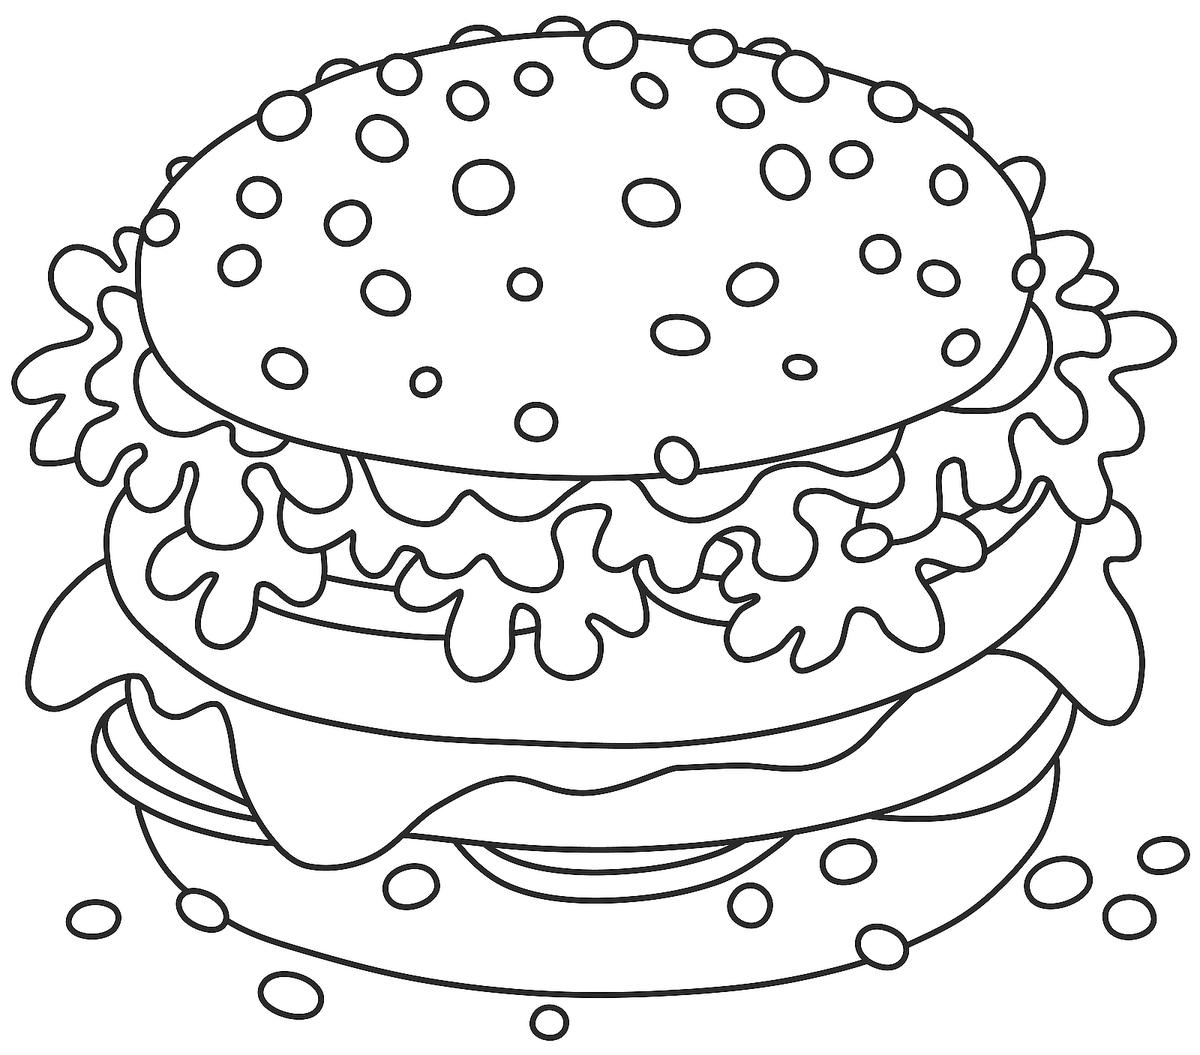 coloring pages of food realistic food coloring pages at getdrawings free download food pages coloring of